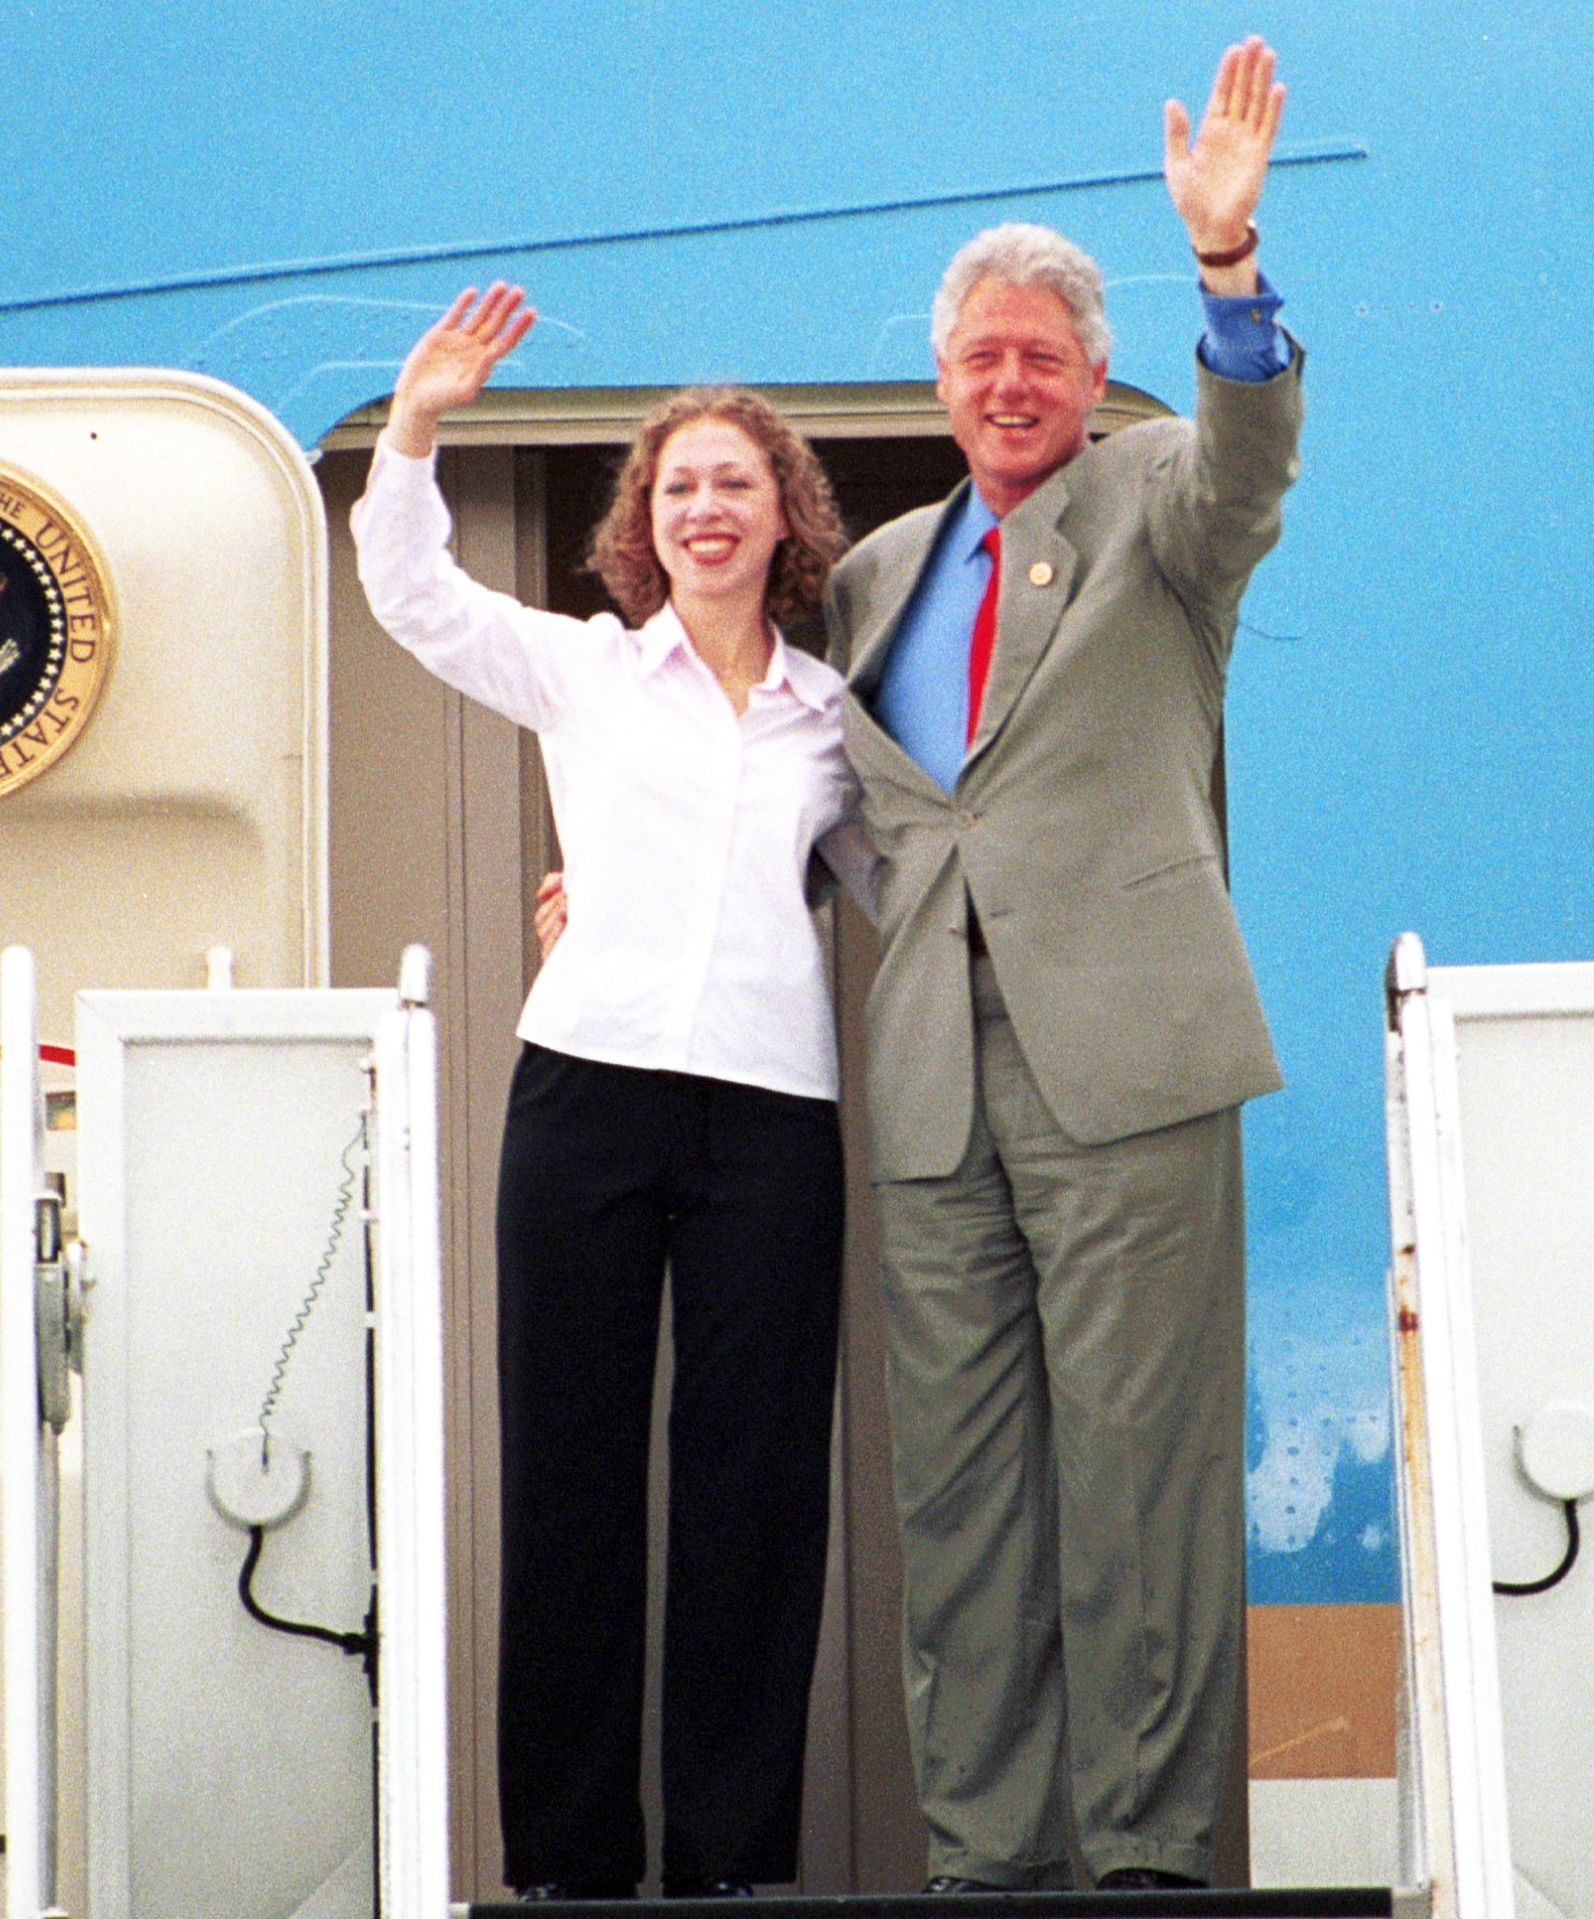 U.S. President Bill Clinton, right, and his daughter Chelsea wave goodbye July 23, 2000